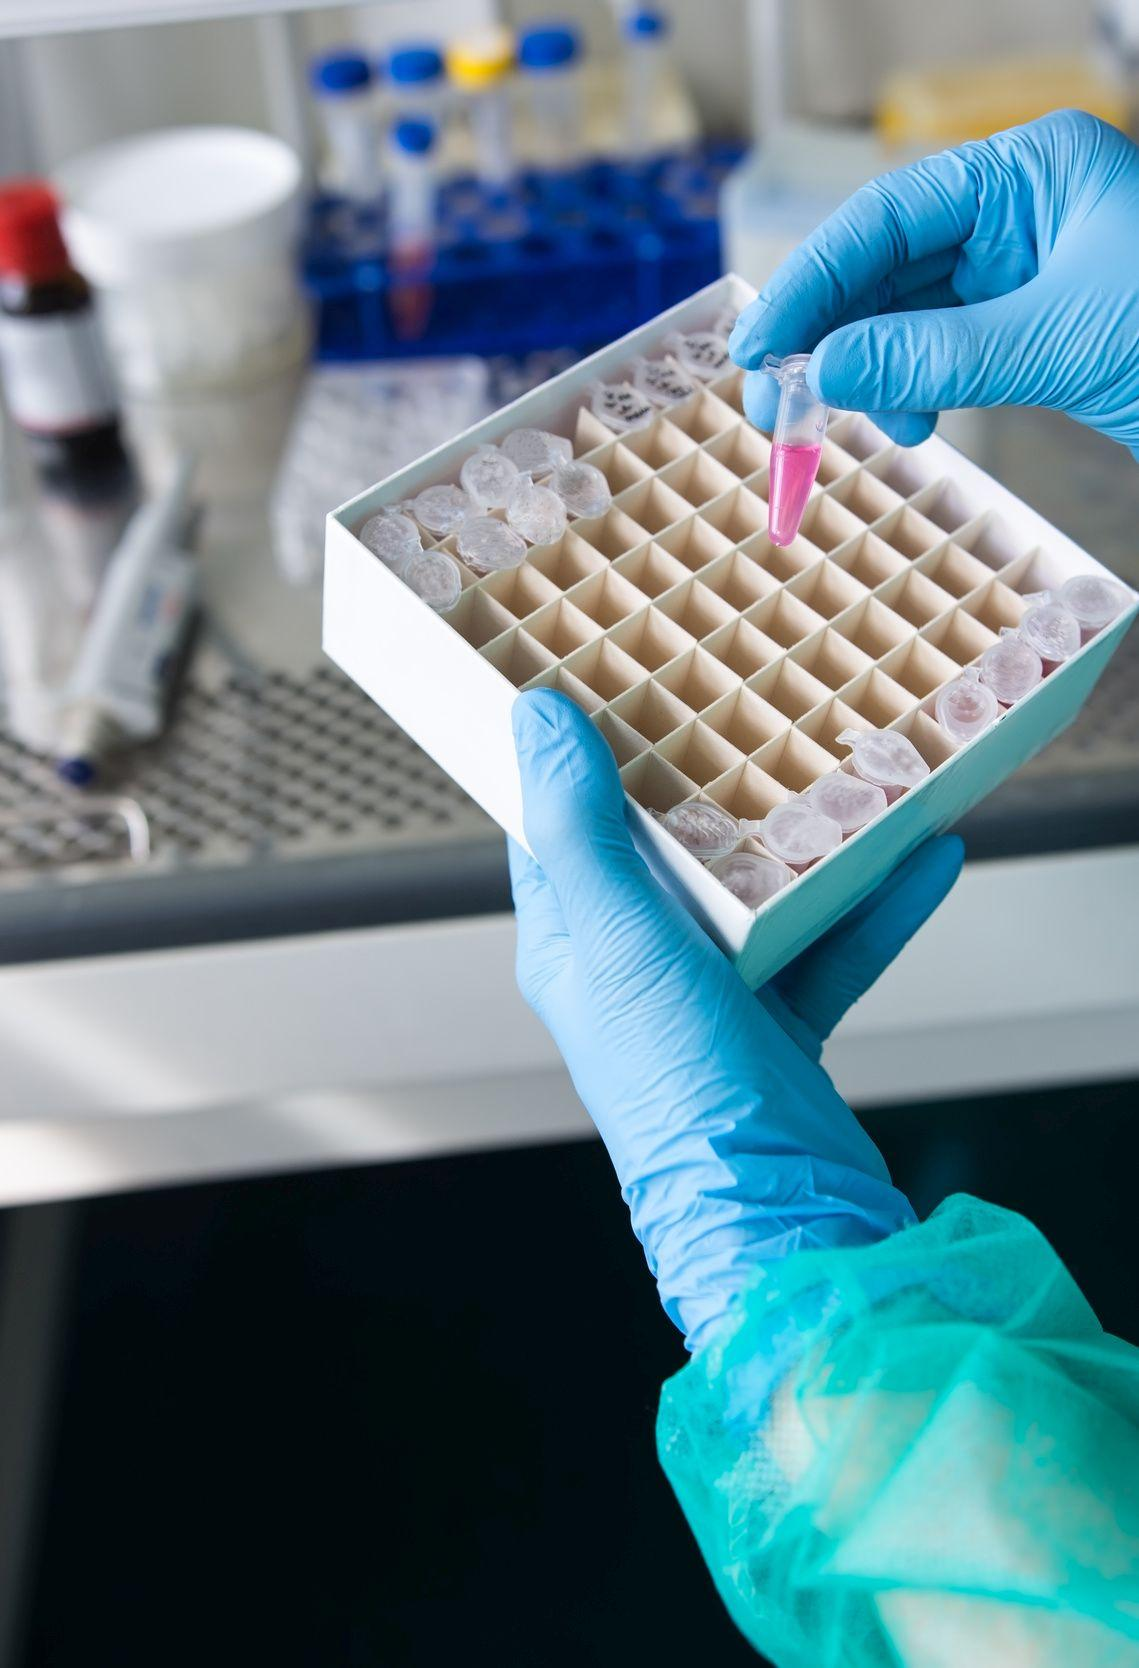 Human cell culture sample studied in research laboratory for pro